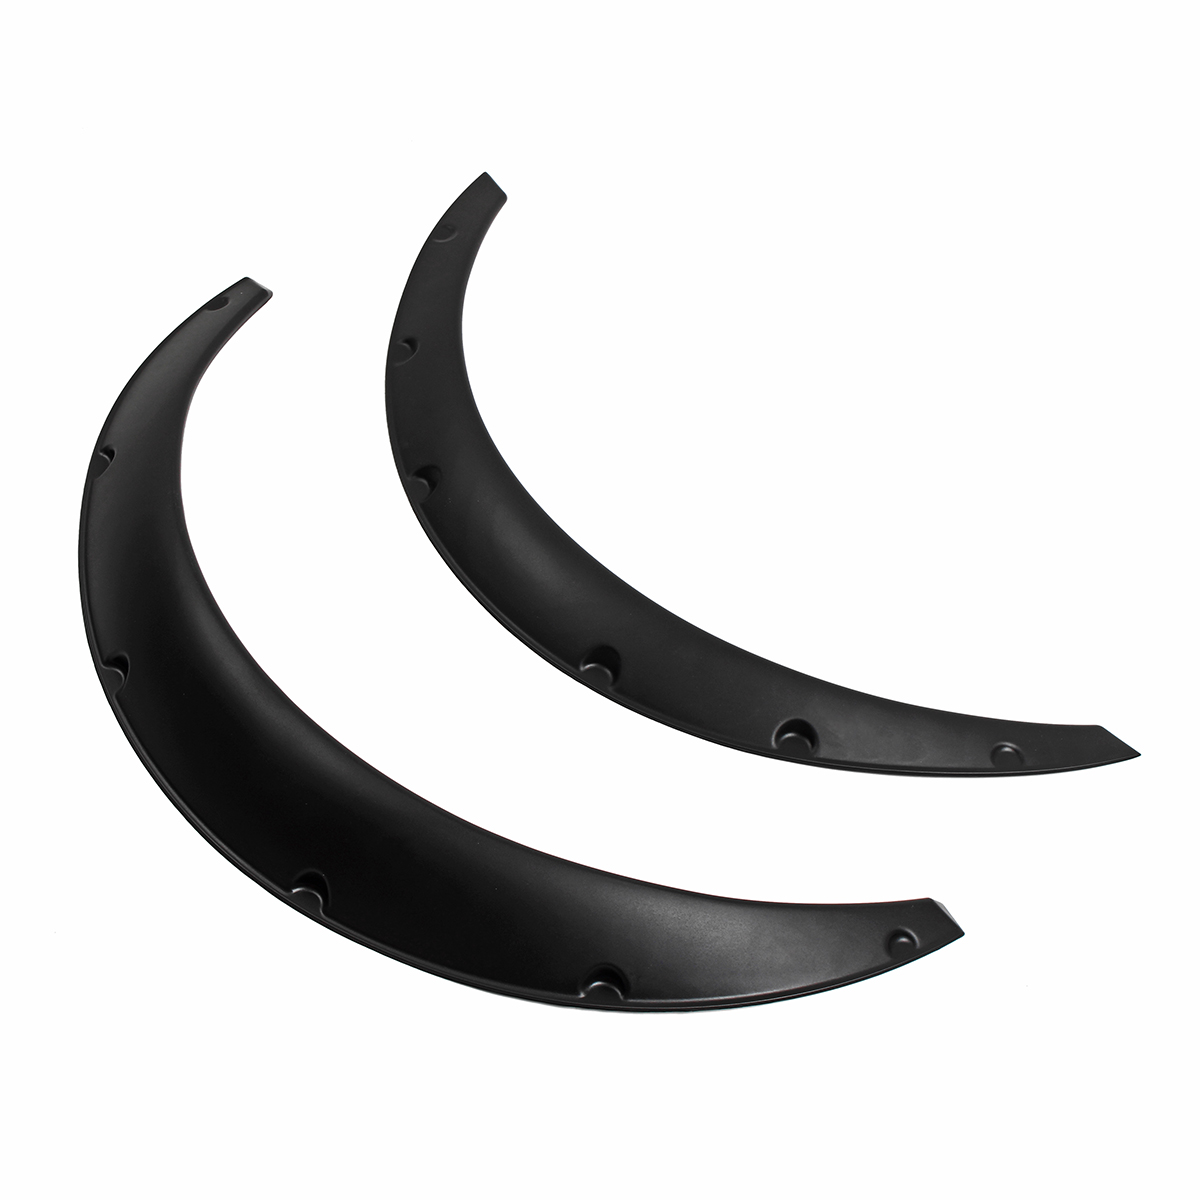 4PCS 90mm Universal Car Fenders Kit Flares Wheel Arch Trim Strip Eyebrow  Protector Cover Automobiles Replacement Parts Black